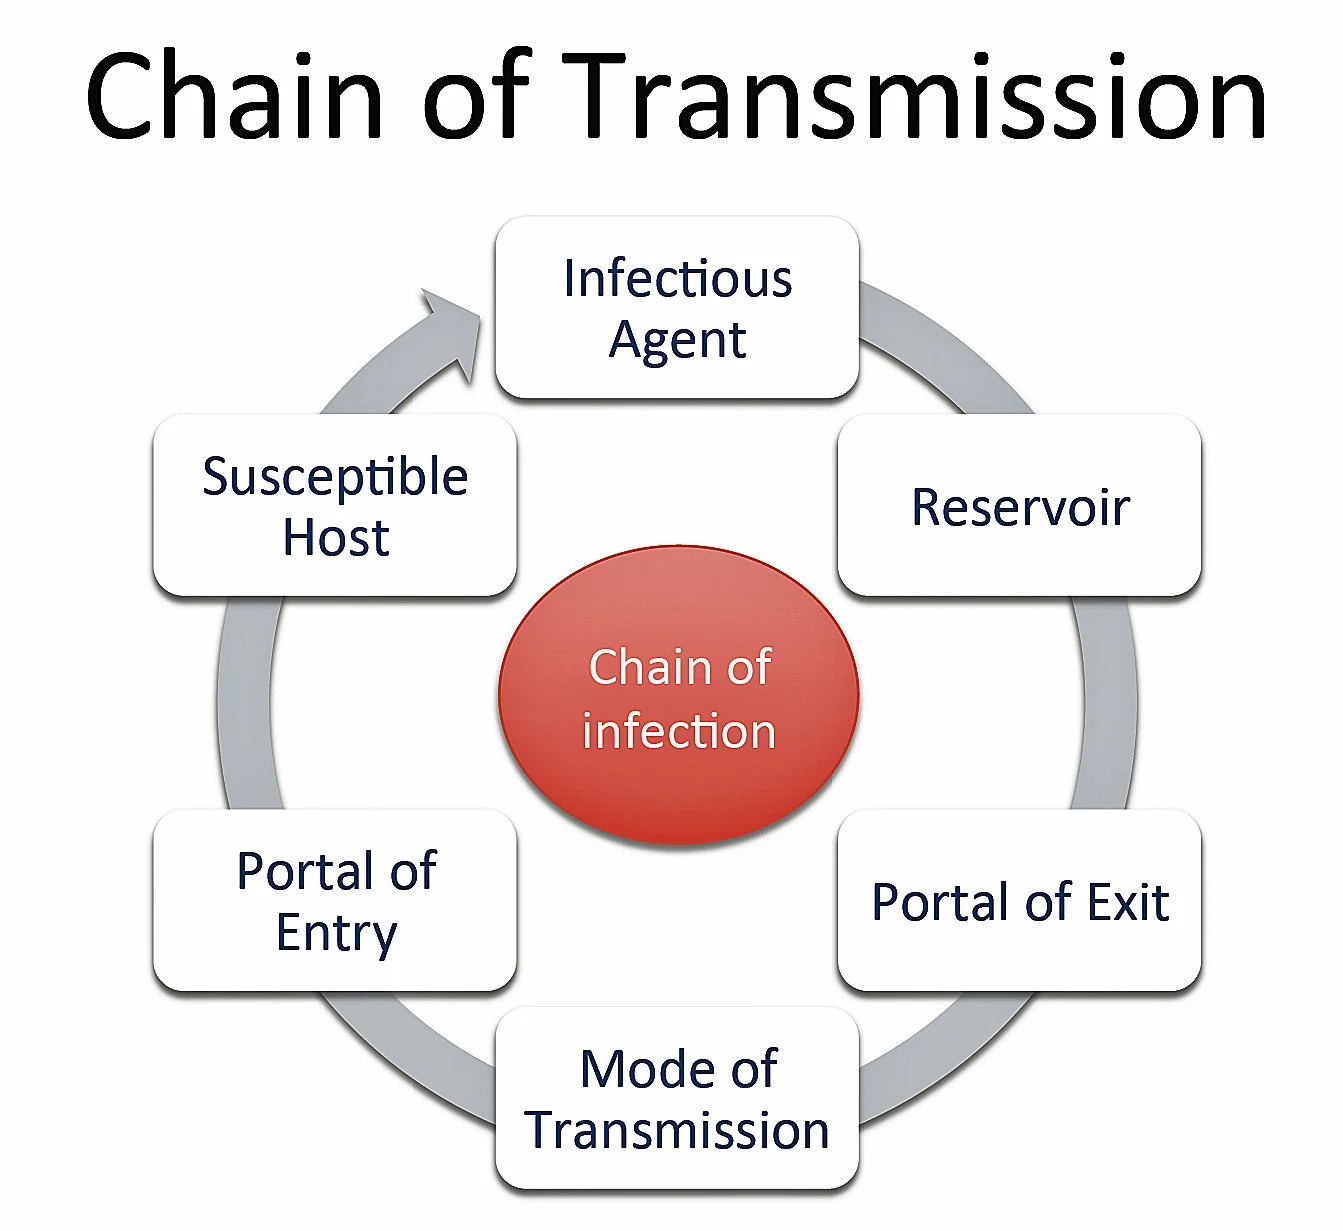 medium resolution of chain of transmission disease detectives wiki fandom powered by wikia